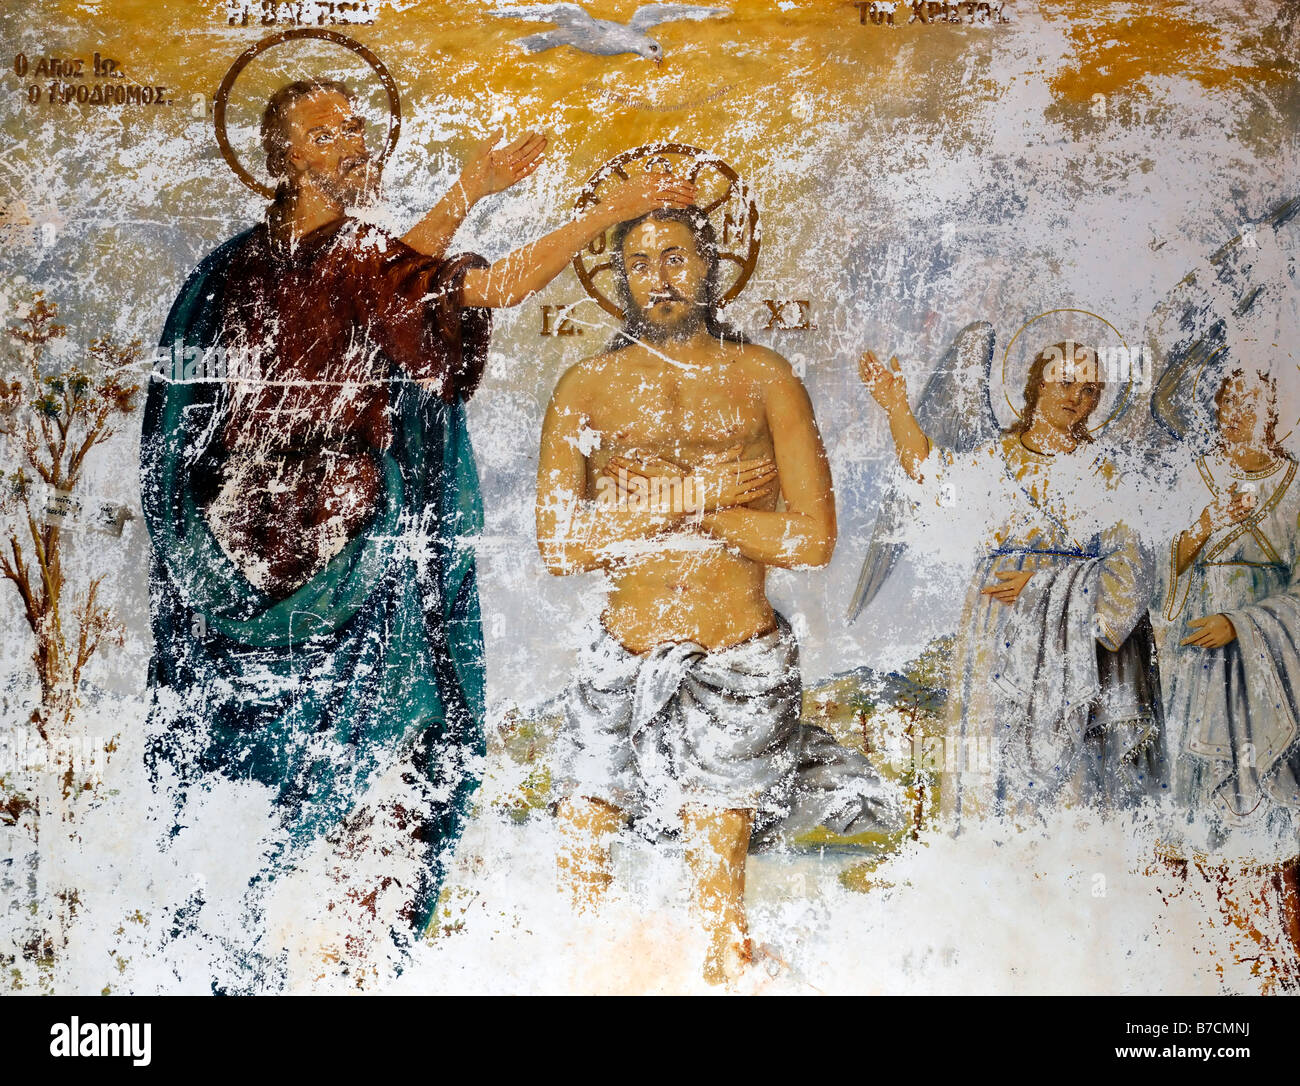 the baptism of john The baptism of jesus (matthew 3:13-17)  and john knew that his baptism did not apply to jesus john had been preaching a baptism unto repentance.